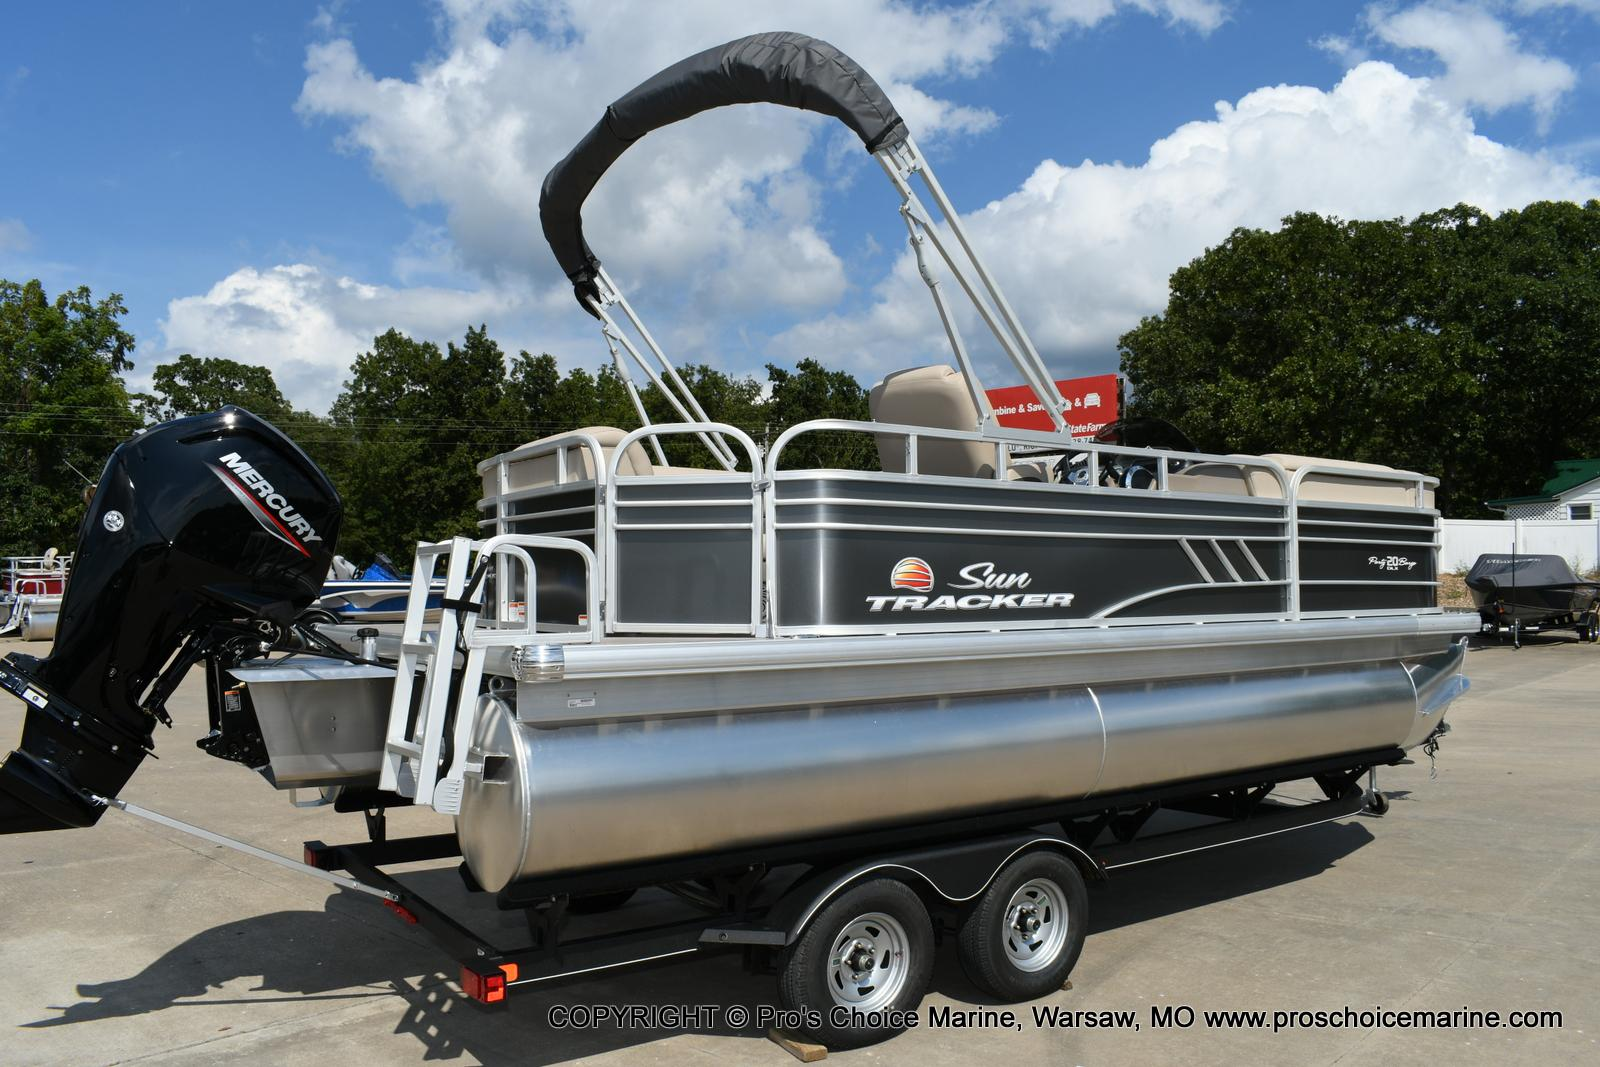 2020 Sun Tracker boat for sale, model of the boat is Party Barge 20 DLX & Image # 32 of 50